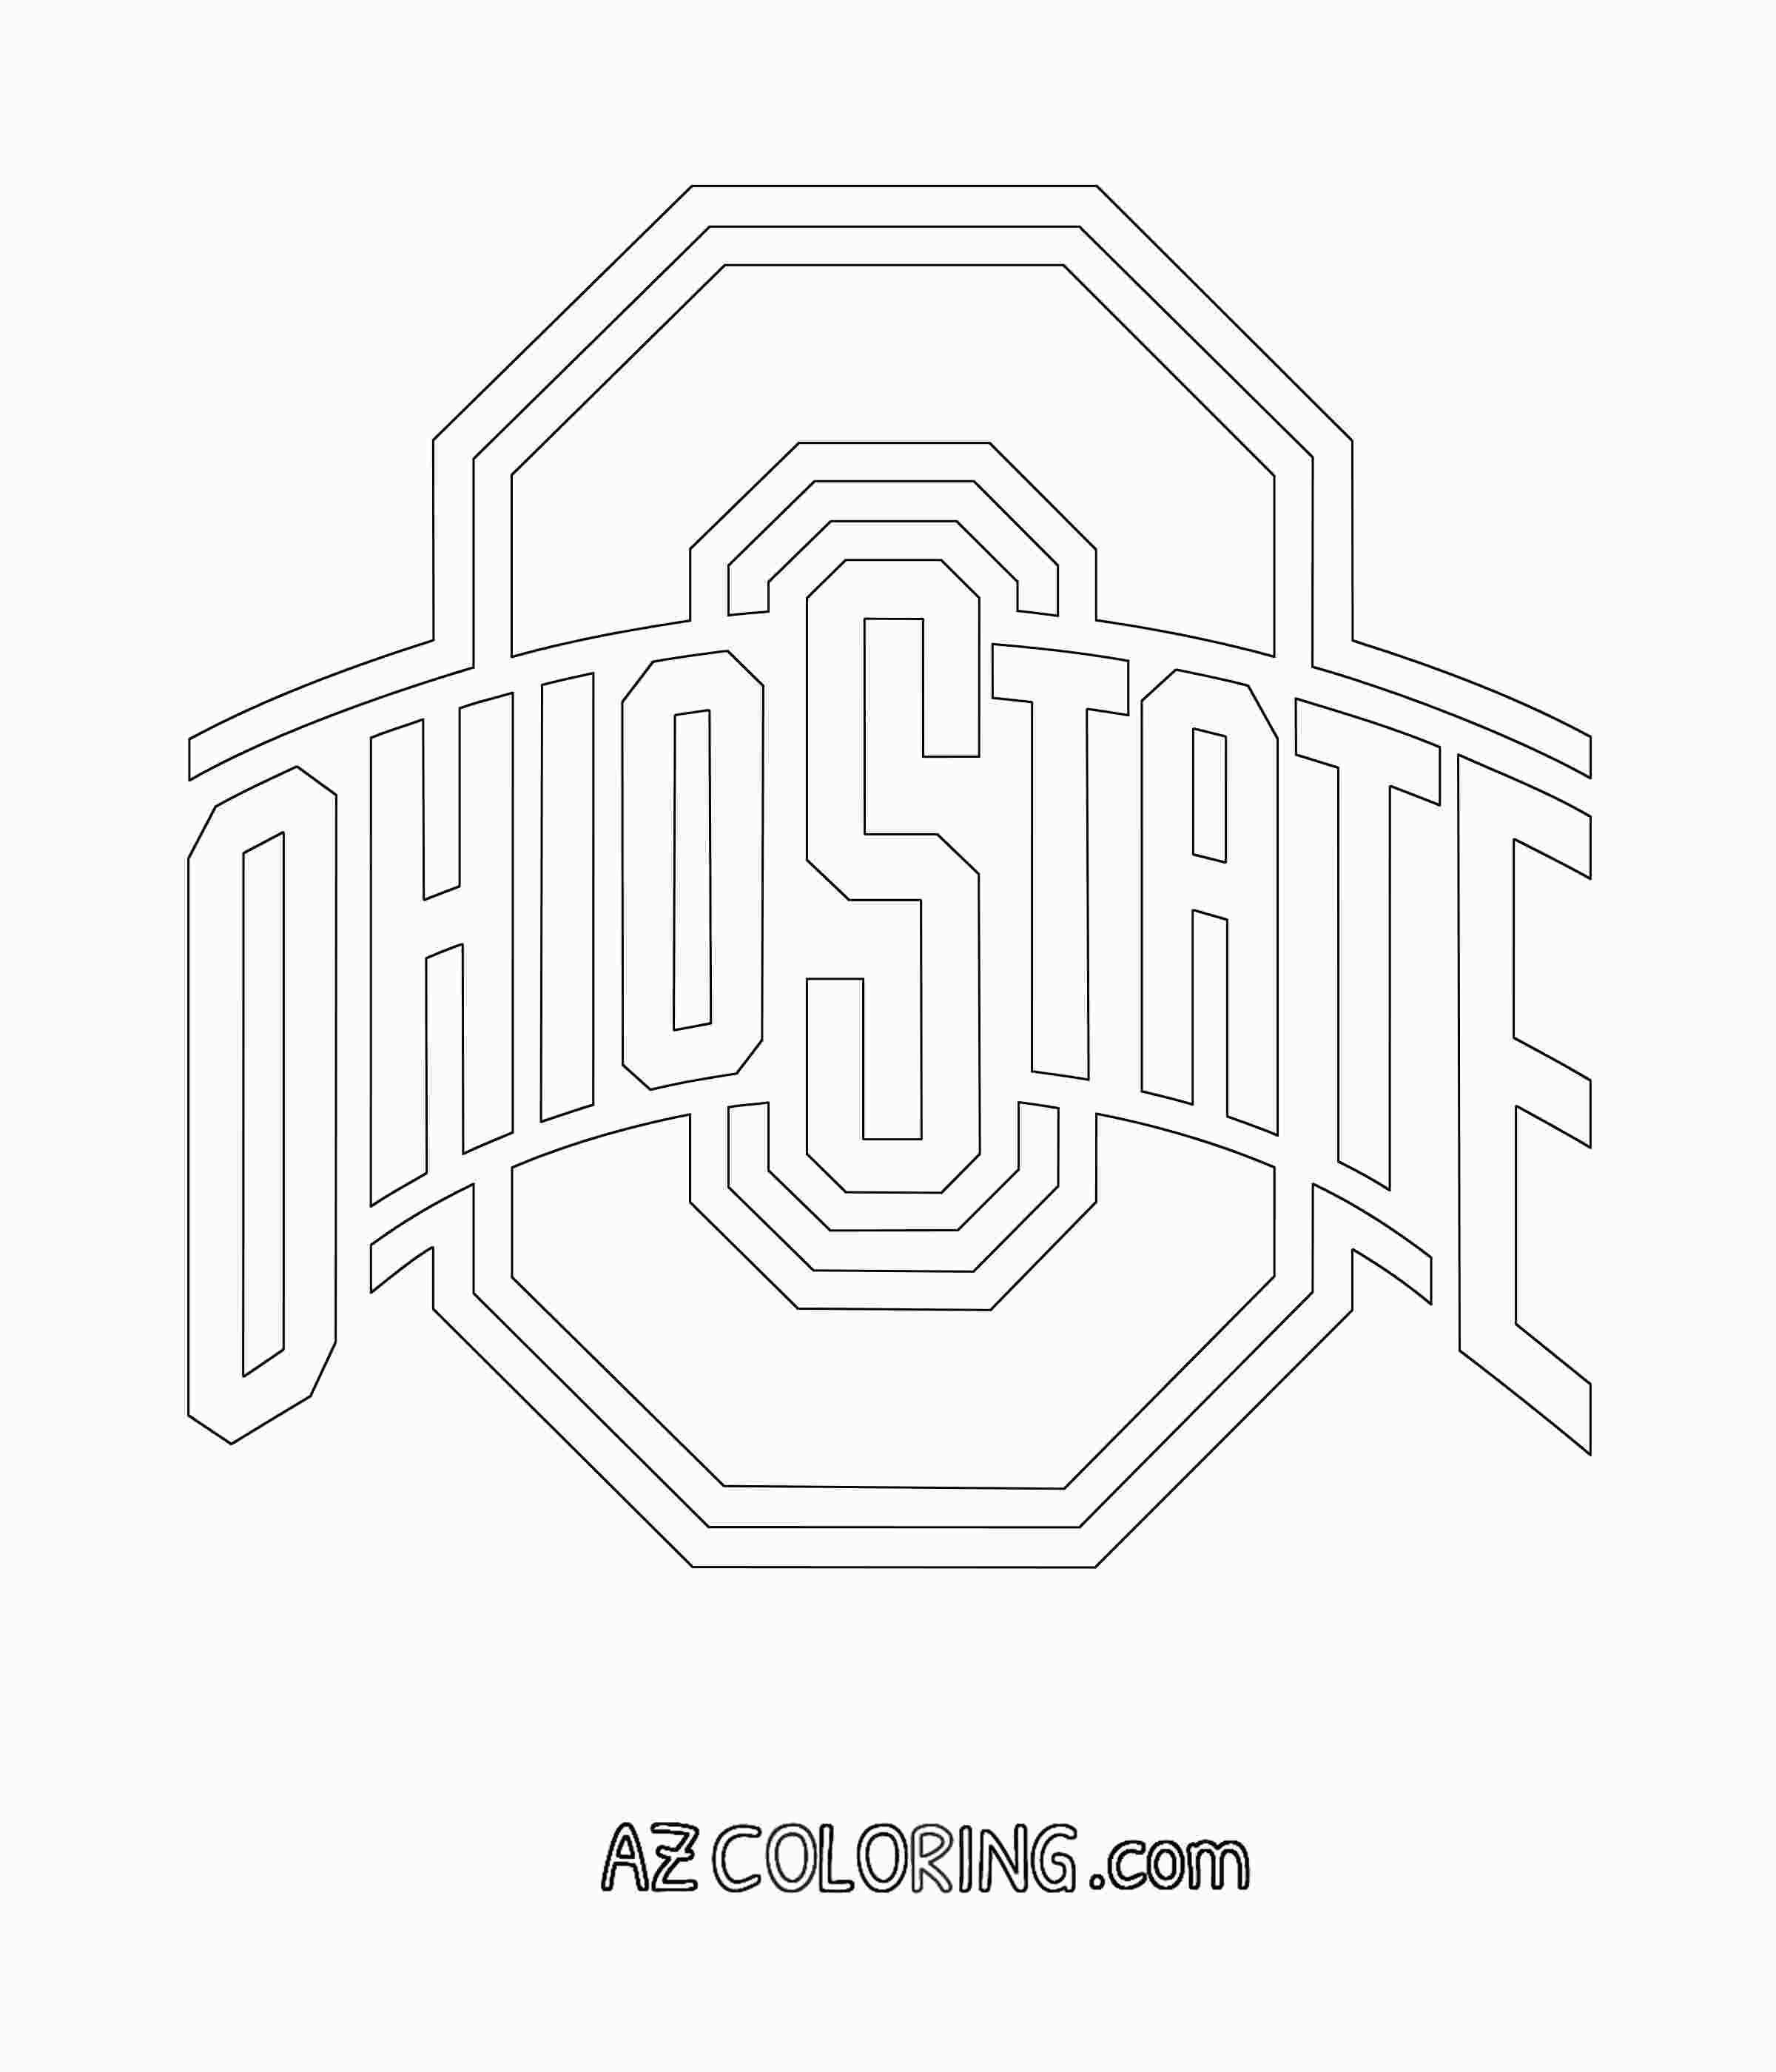 Ohio State Coloring Pages Ohio State Logo Football Coloring Pages Ohio State Buckeyes